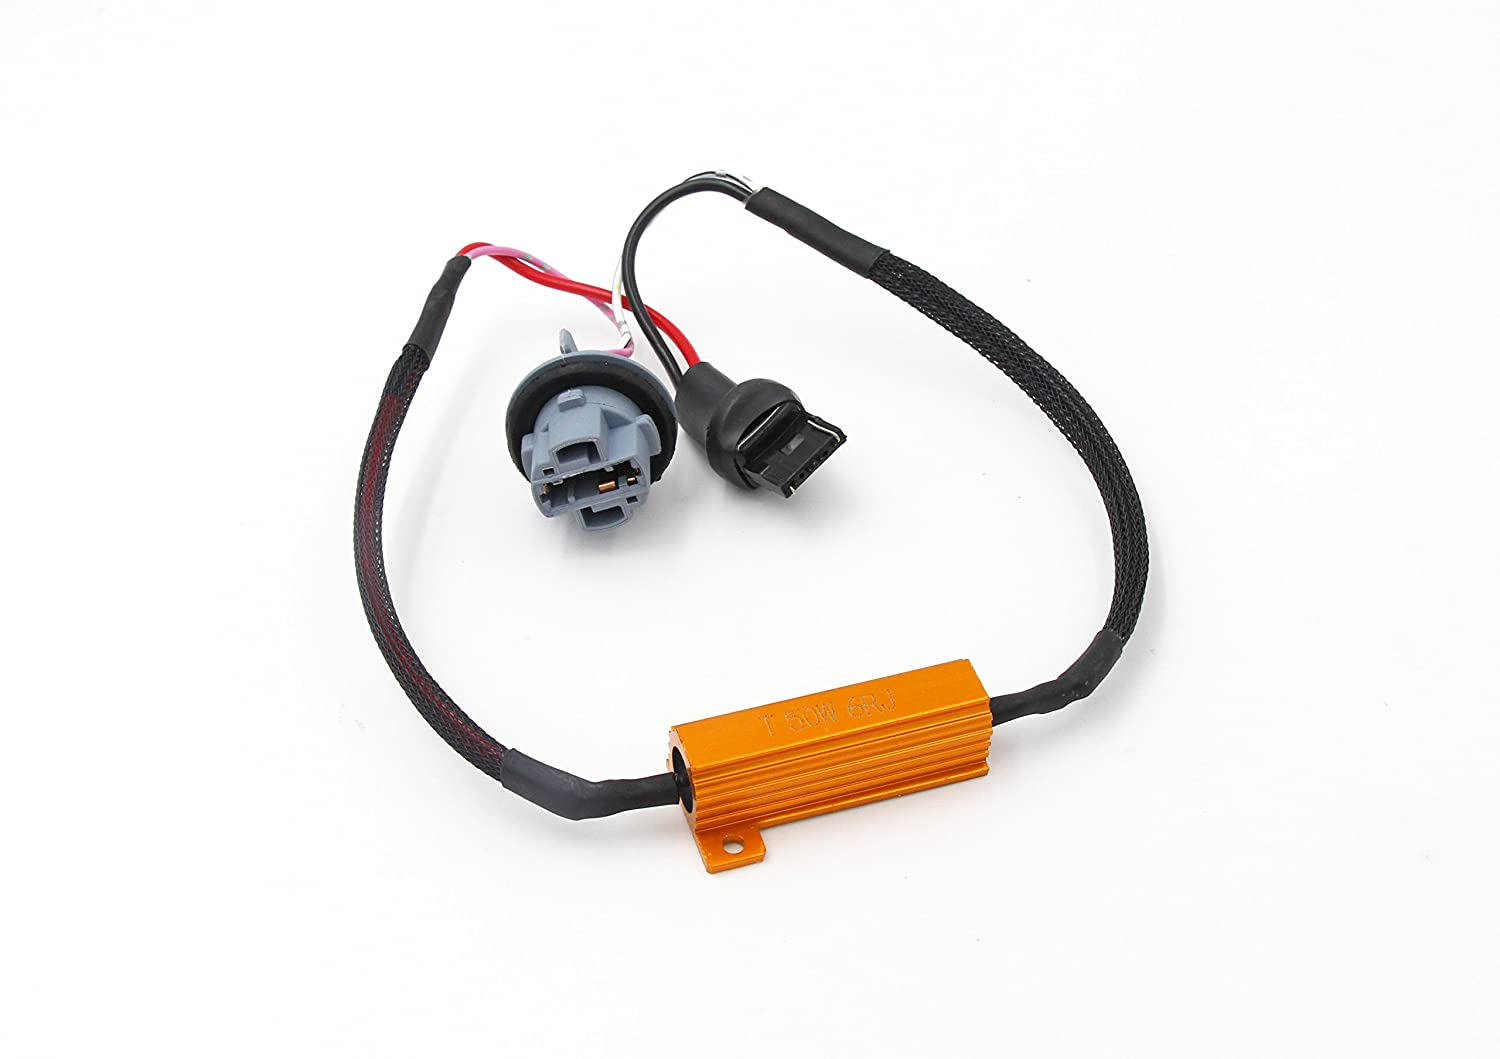 Alla Lighting 7440 7441 T20 50W 6Ohm Error Free LED Lights Load Resistor Adapter Fix Flashing Fast Blinking Canbus Bypass Wiring Harness for Upgrading LED Turn Signal Blinker Light Lamps